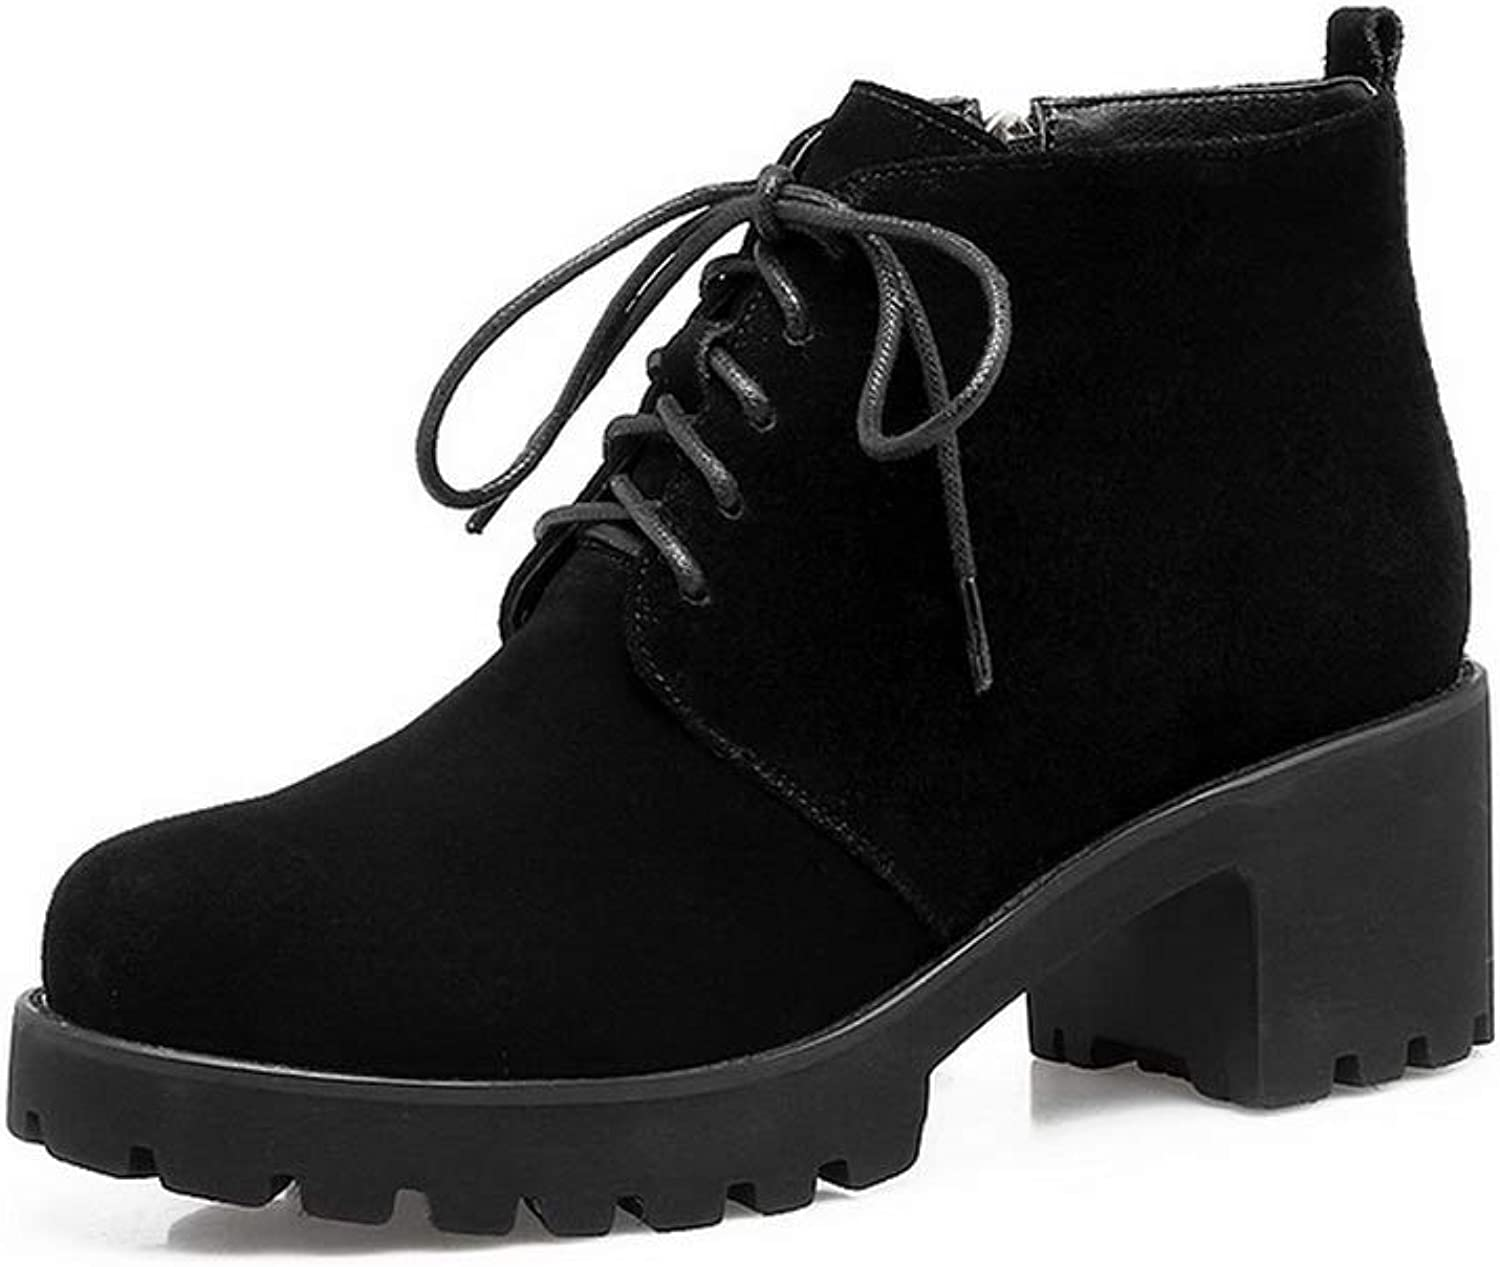 1TO9 Womens Mule Platform Casual Urethane Boots MNS03444